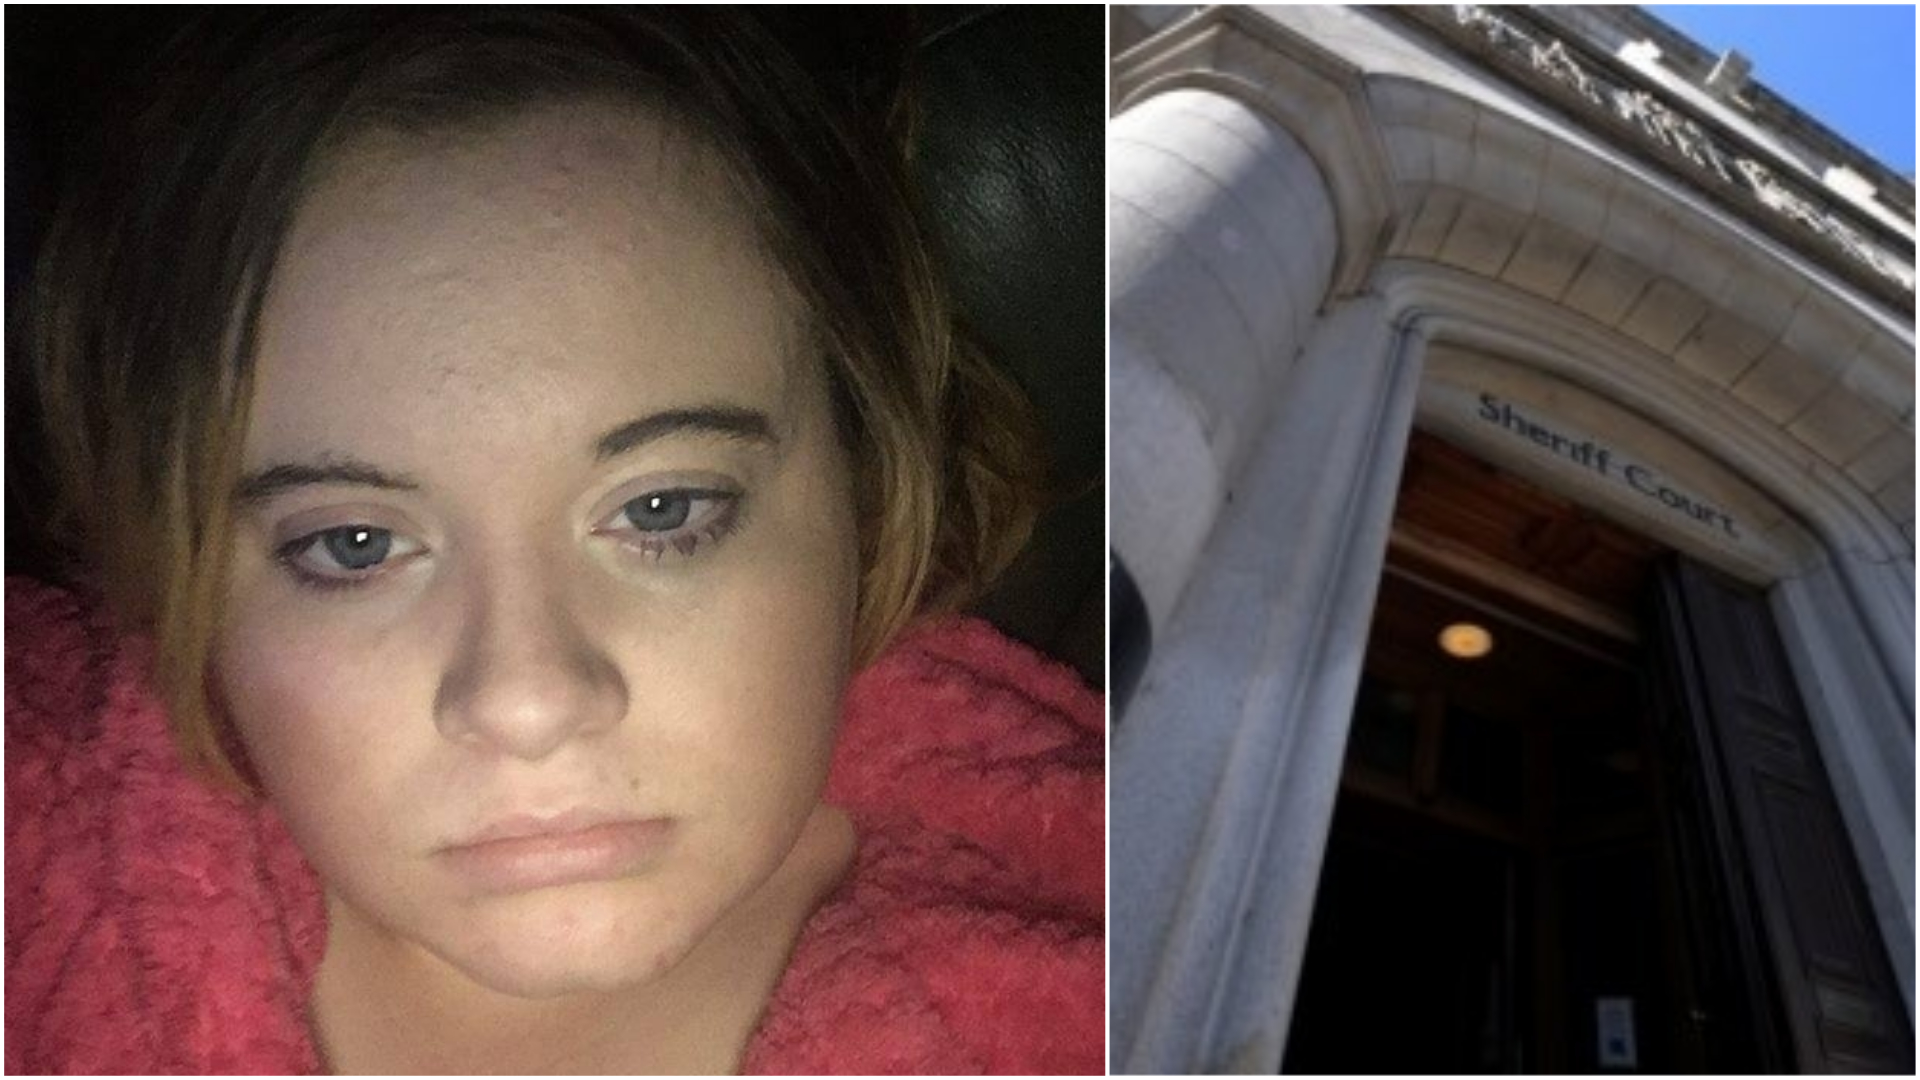 Abbie Will appeared at Aberdeen Sheriff Court